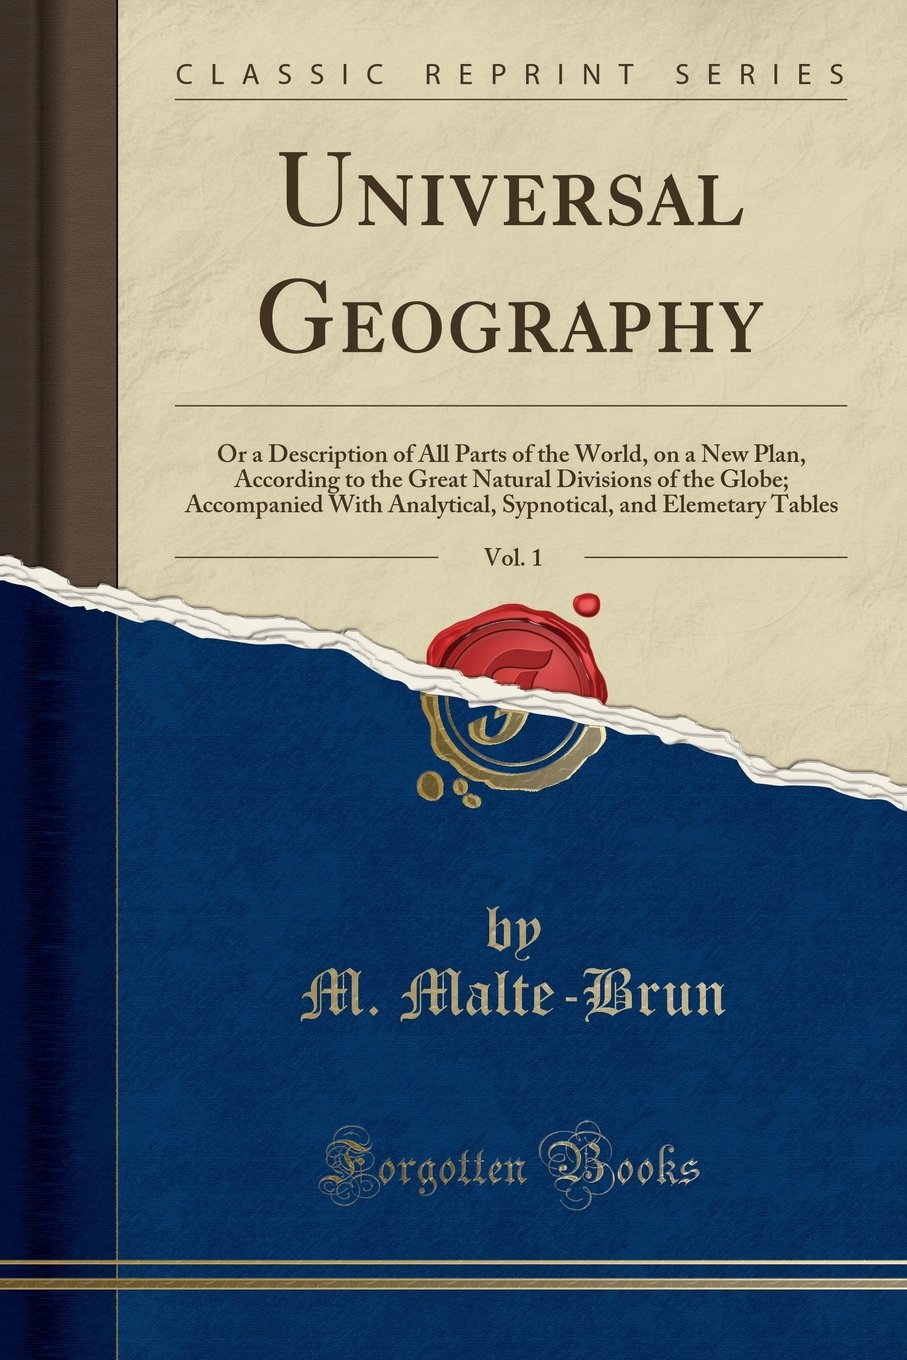 Universal Geography, Vol. 1: Or a Description of All Parts of the World, on a New Plan, According to the Great Natural Divisions of the Globe; ... and Elemetary Tables (Classic Reprint) pdf epub